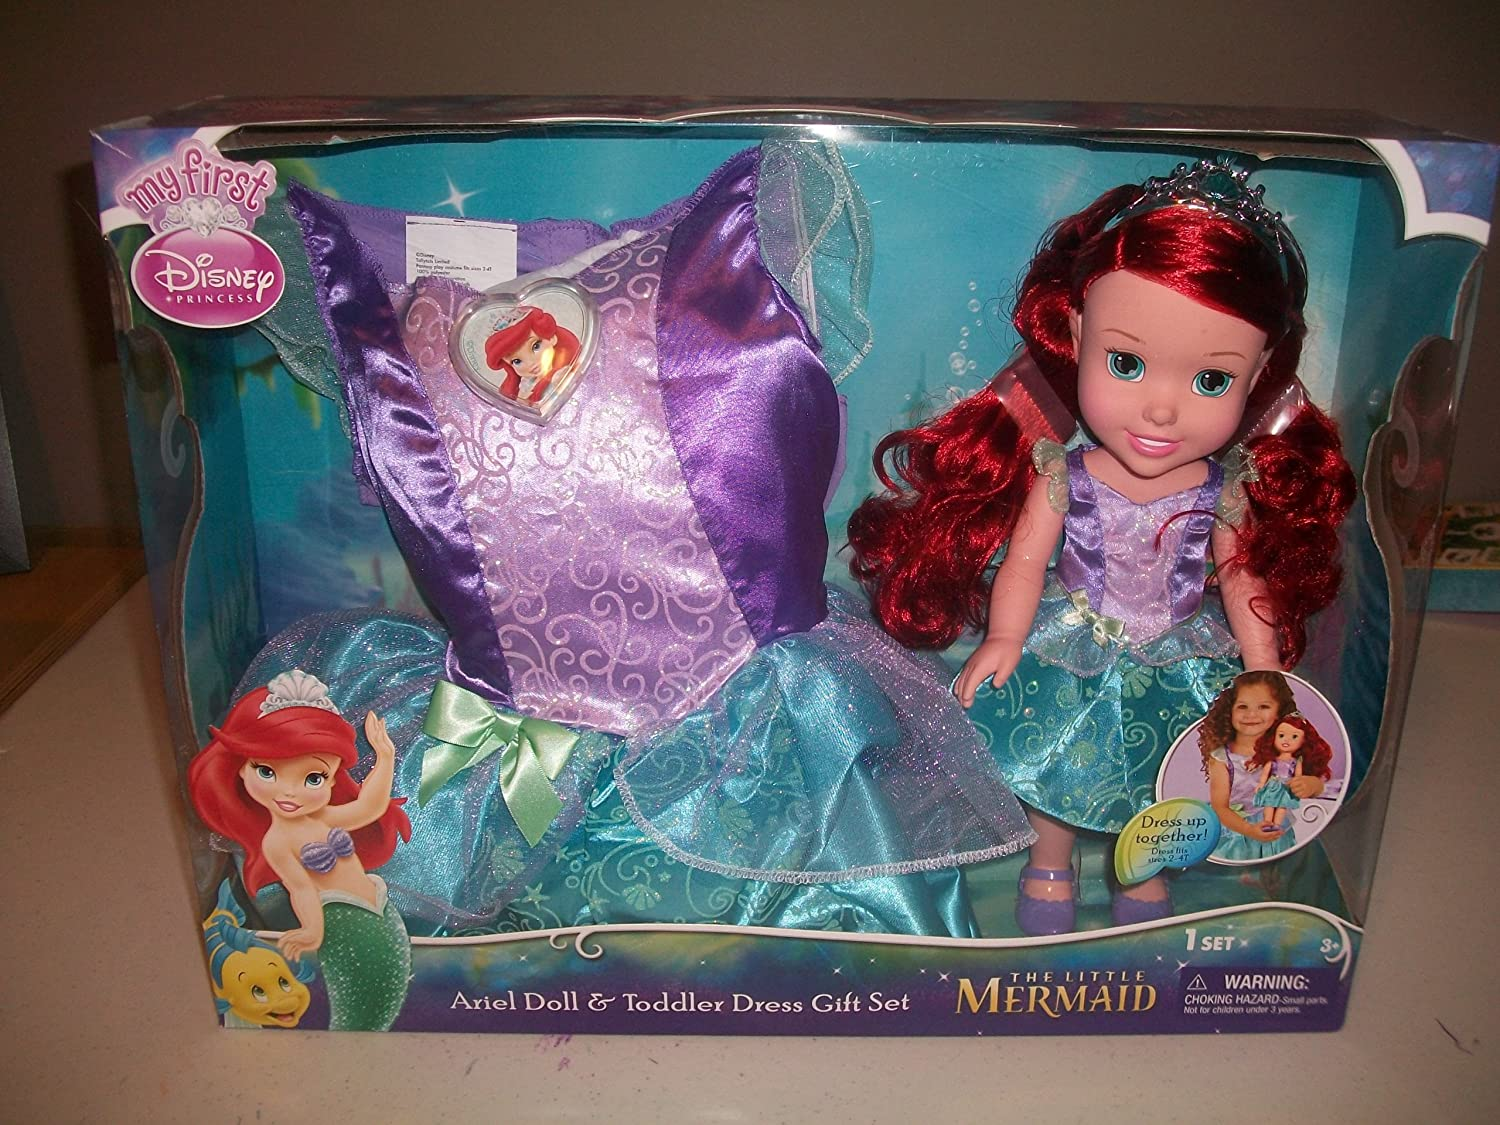 My First Disney Princess  Ariel Toddler Doll and Toddler Dress Gift Set